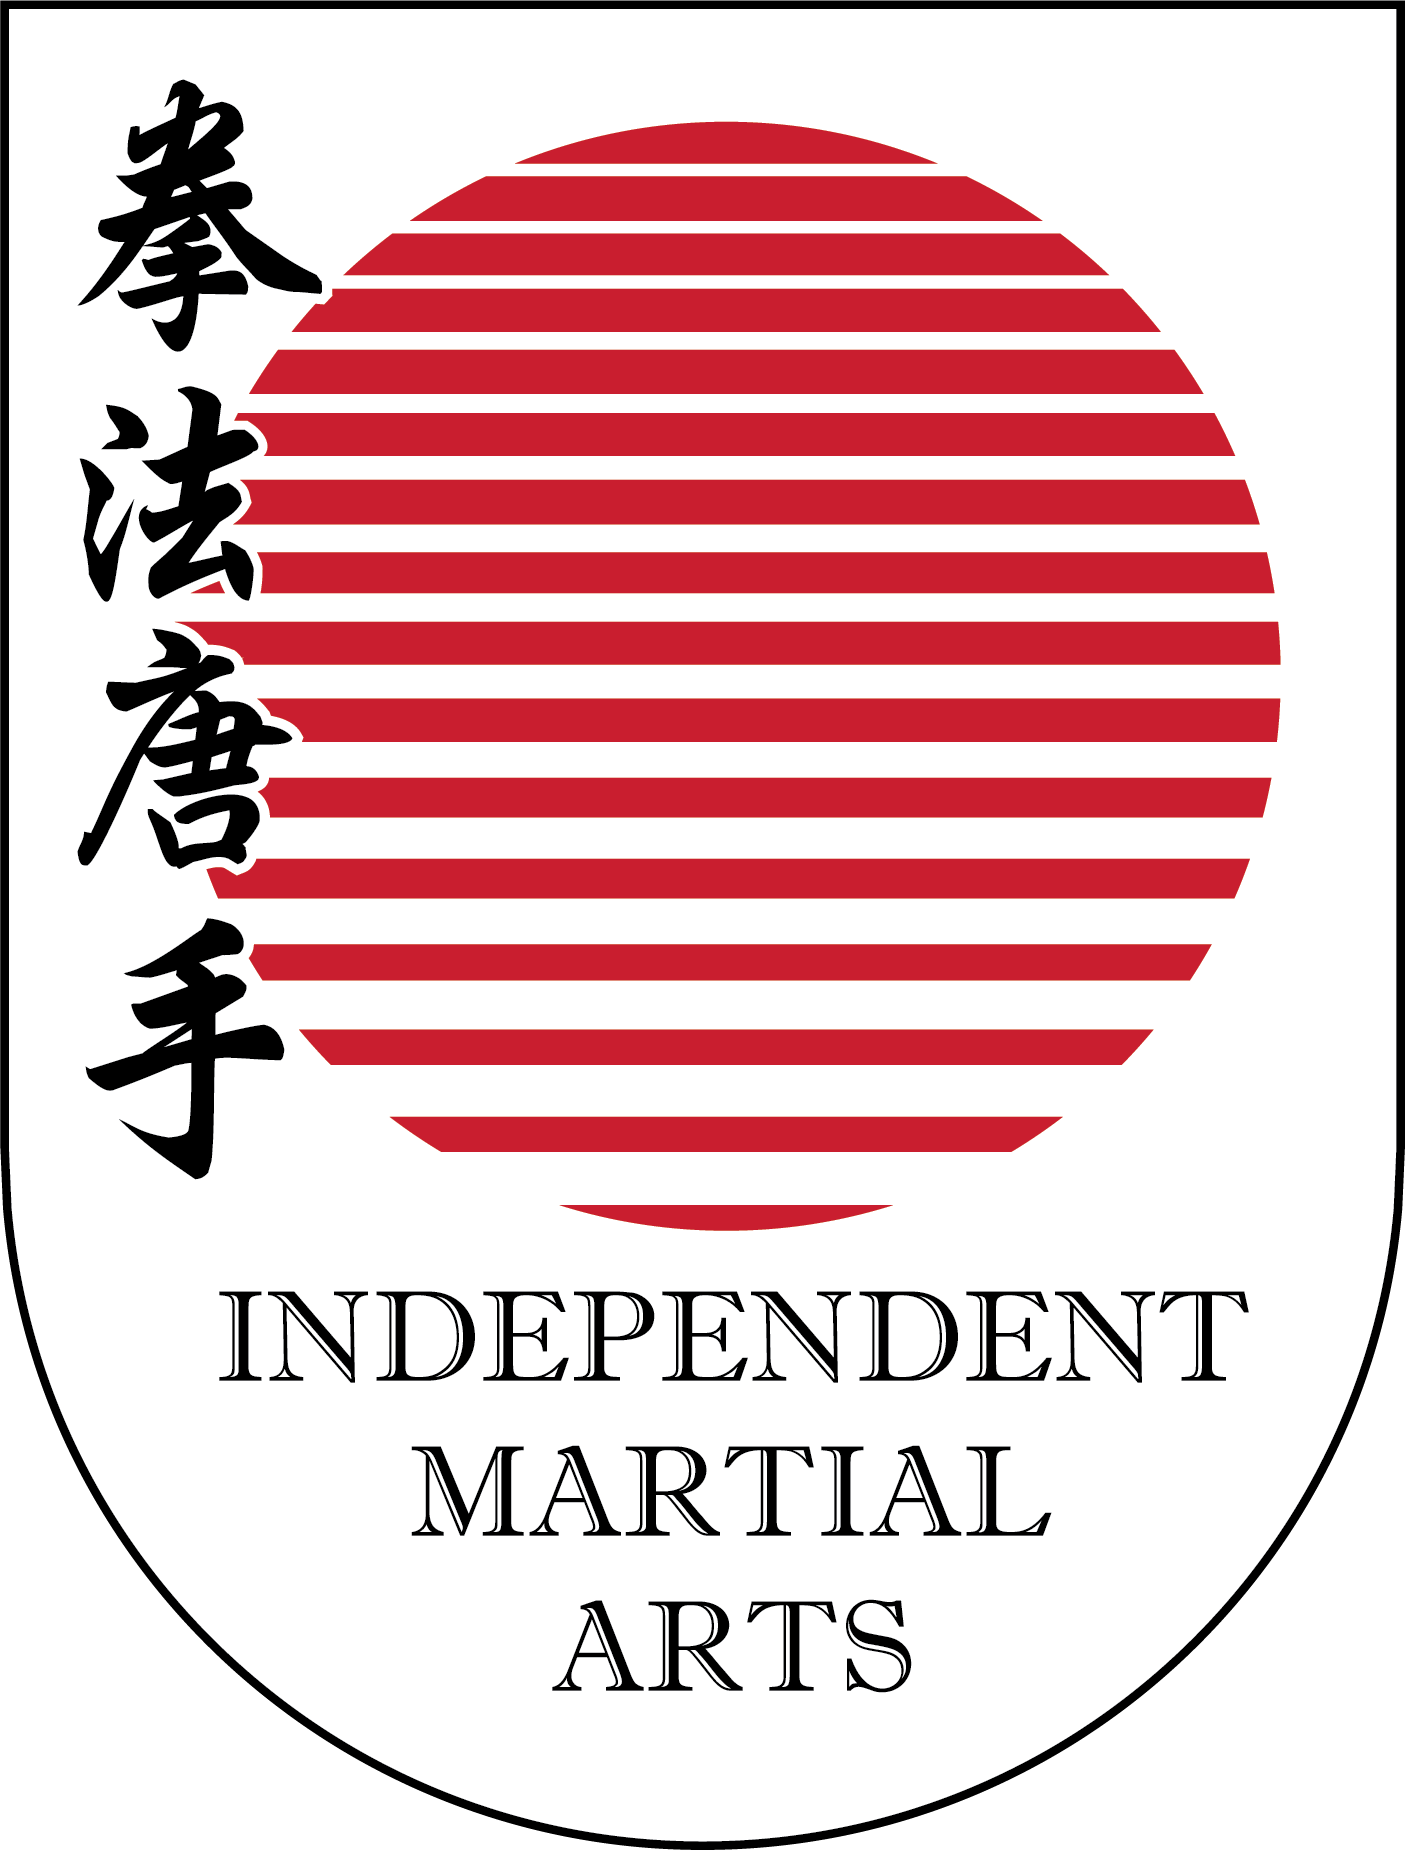 Independent Martial Arts School of Greater Nashua